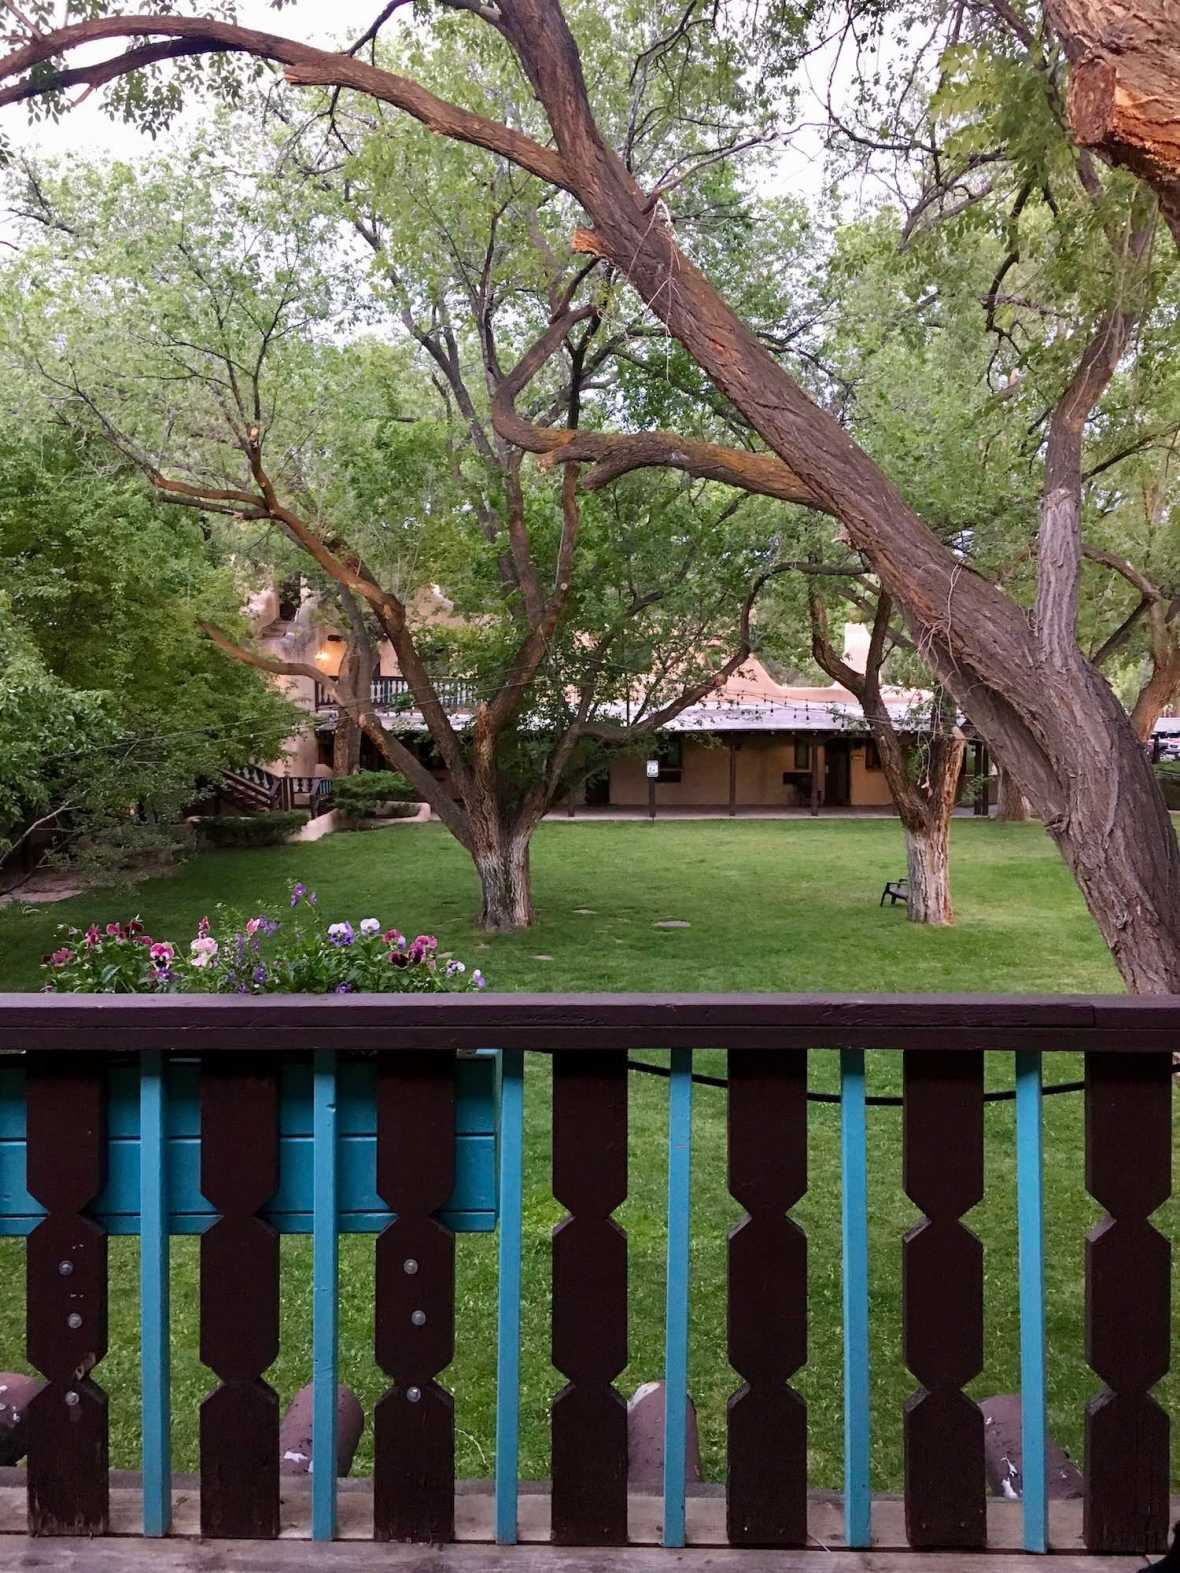 Overlooking one of the courtyards at the Historic Sagebrush Inn in Taos, New Mexico